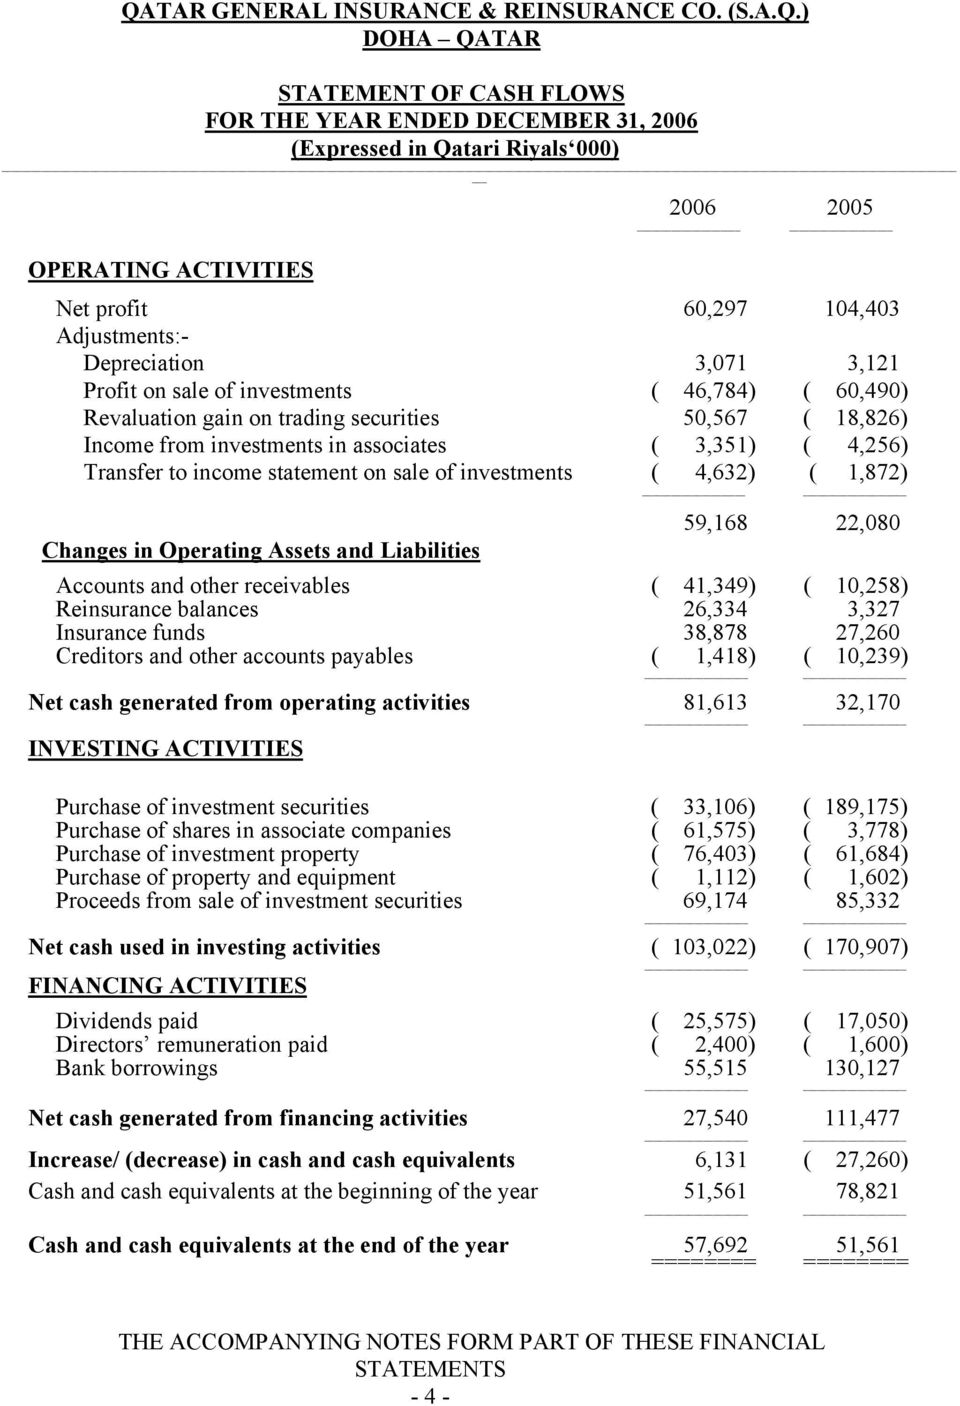 ( 4,256) Transfer to income statement on sale of investments ( 4,632) ( 1,872) 59,168 22,080 Changes in Operating Assets and Liabilities Accounts and other receivables ( 41,349) ( 10,258) Reinsurance